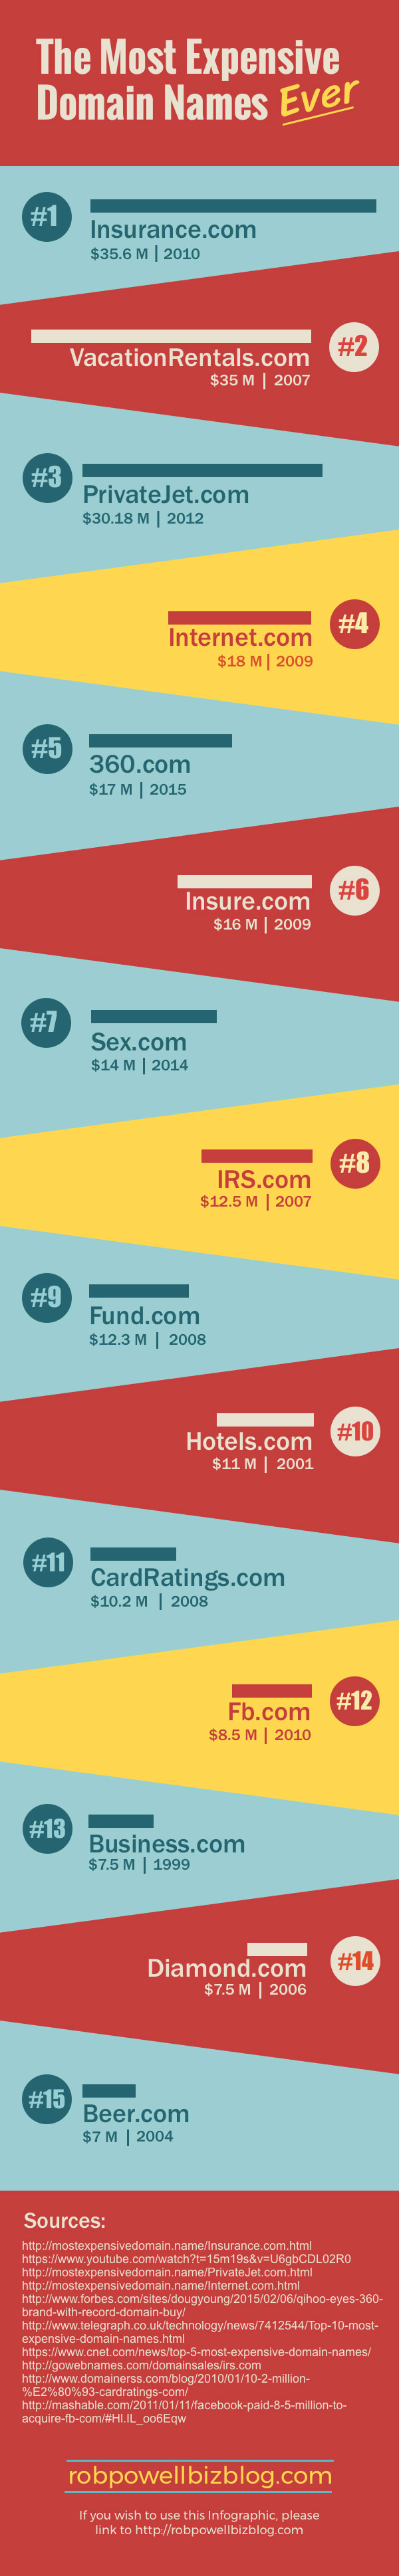 The 15 Most Expensive Domains Ever